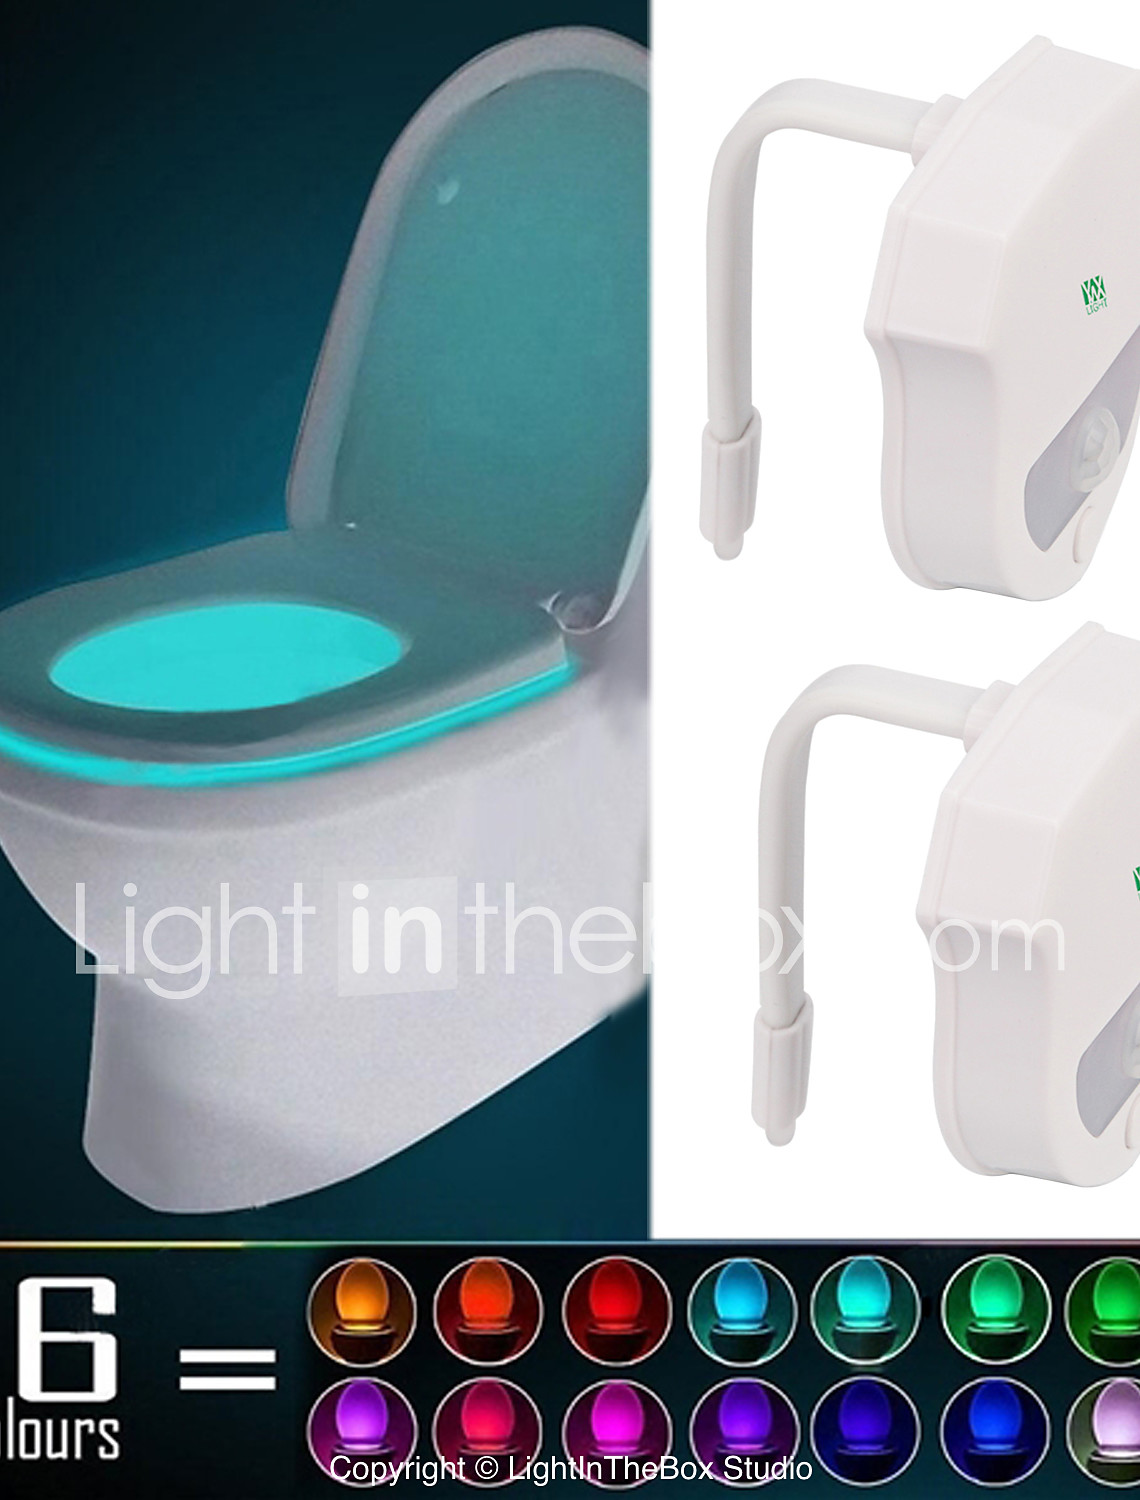 2 Pcs Ywxlight Ip65 16 Colors Motion Activated Toilet Night Light Fit Any Toilet Water Resistant Bathroom Night Light Easy Clean 6070809 2020 12 99